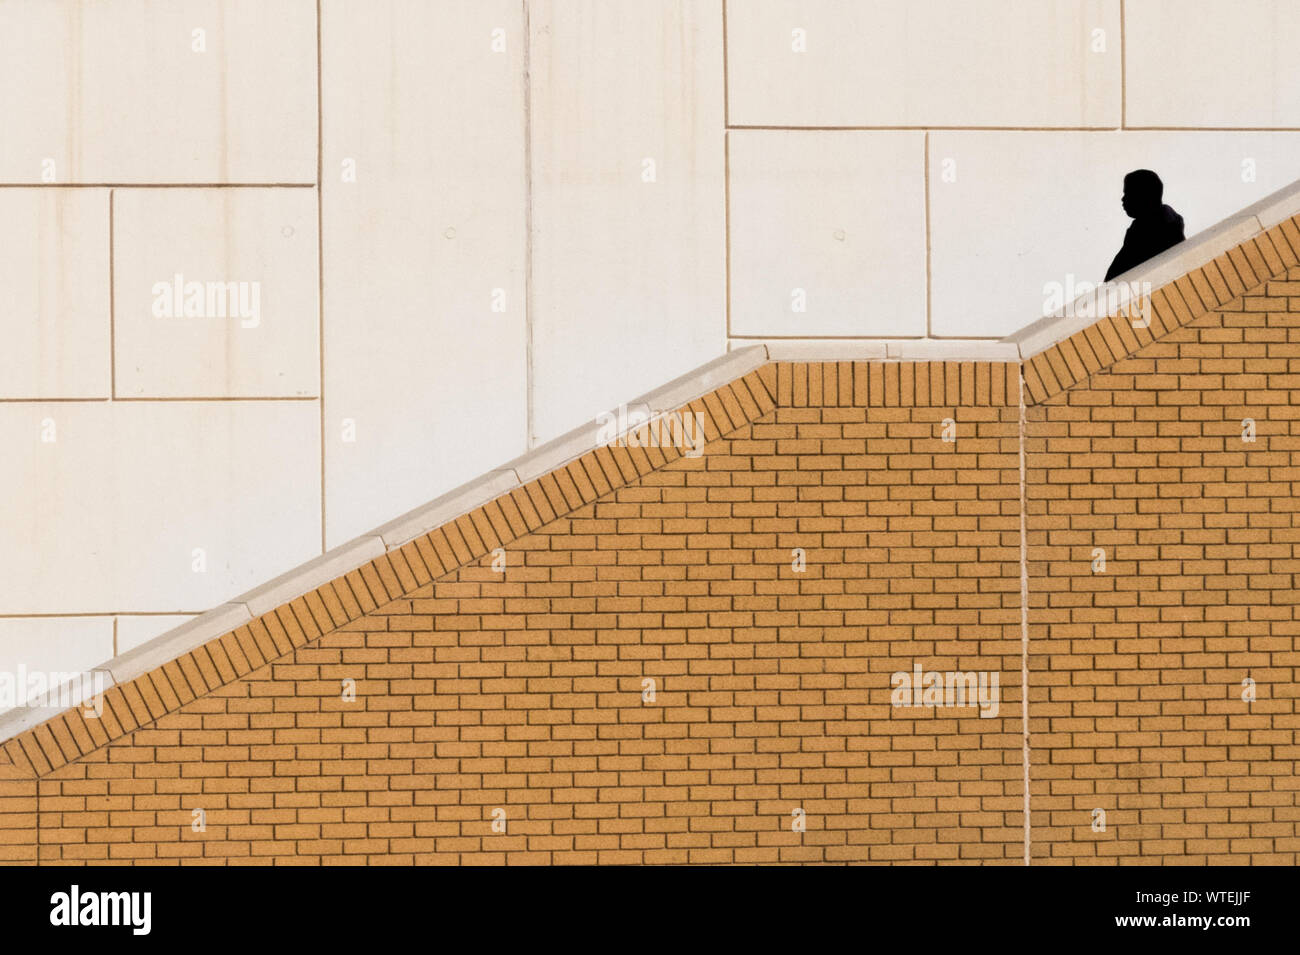 Silhouette Man Walking On Steps Against Wall Stock Photo